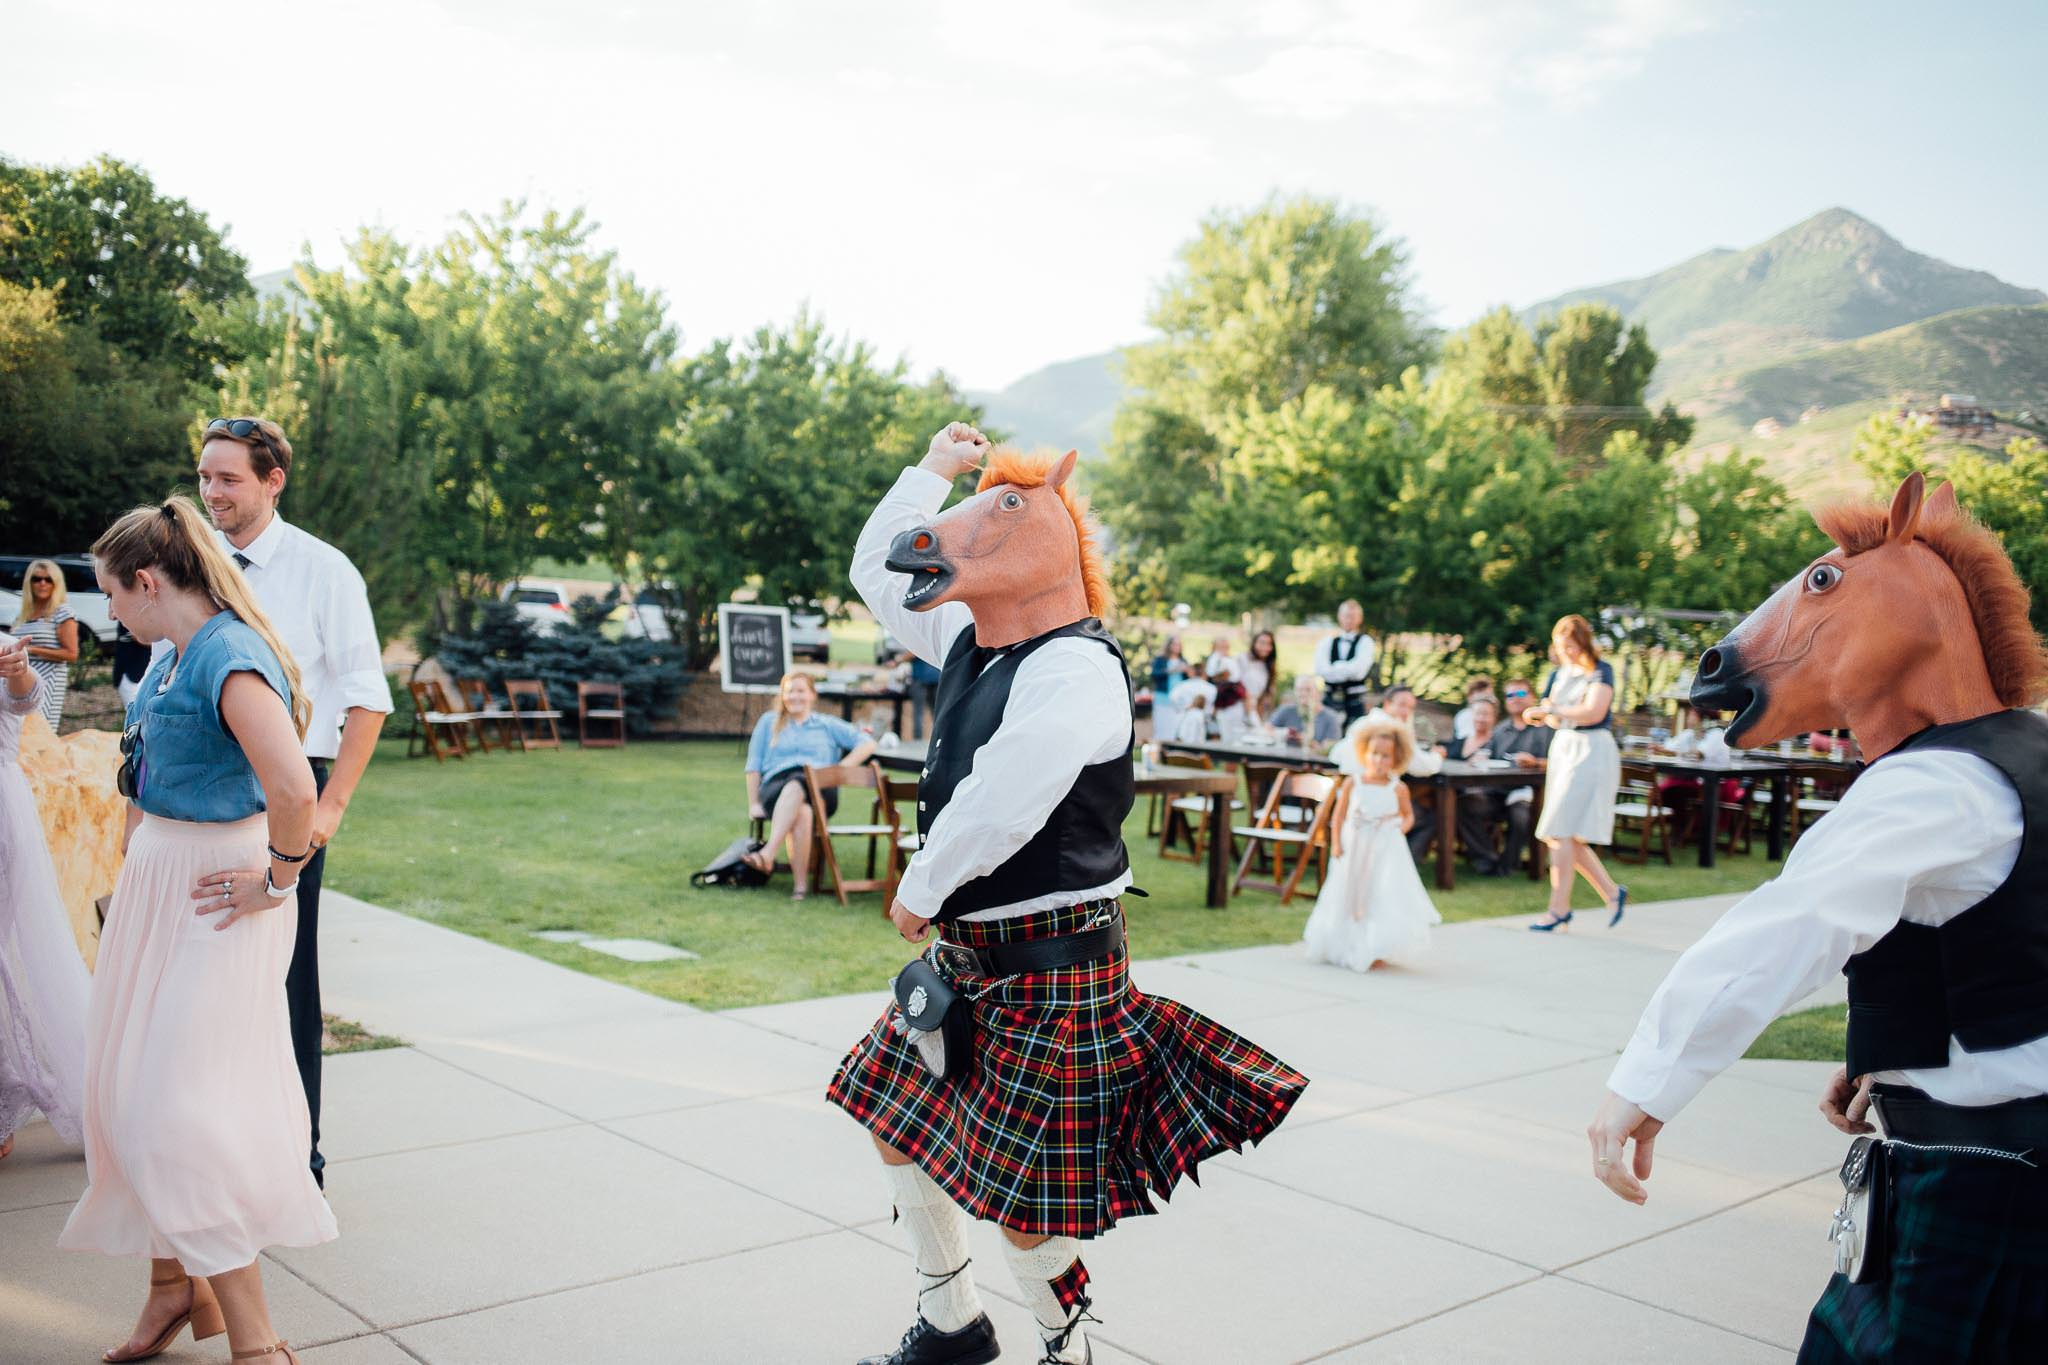 Guest in Scottish kilt and horse head mask dances to Gangnam Style at Midway Utah mountain wedding reception